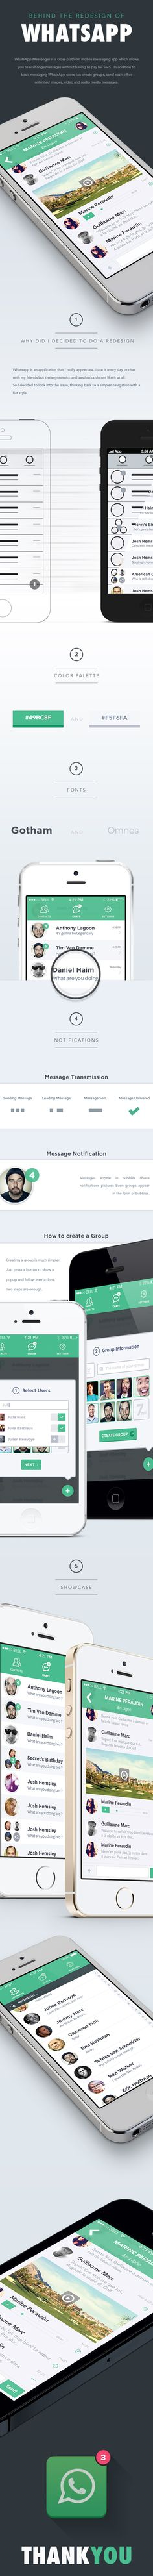 Ad design  Whatsapp Redesign by Guillaume Marc, via Behance